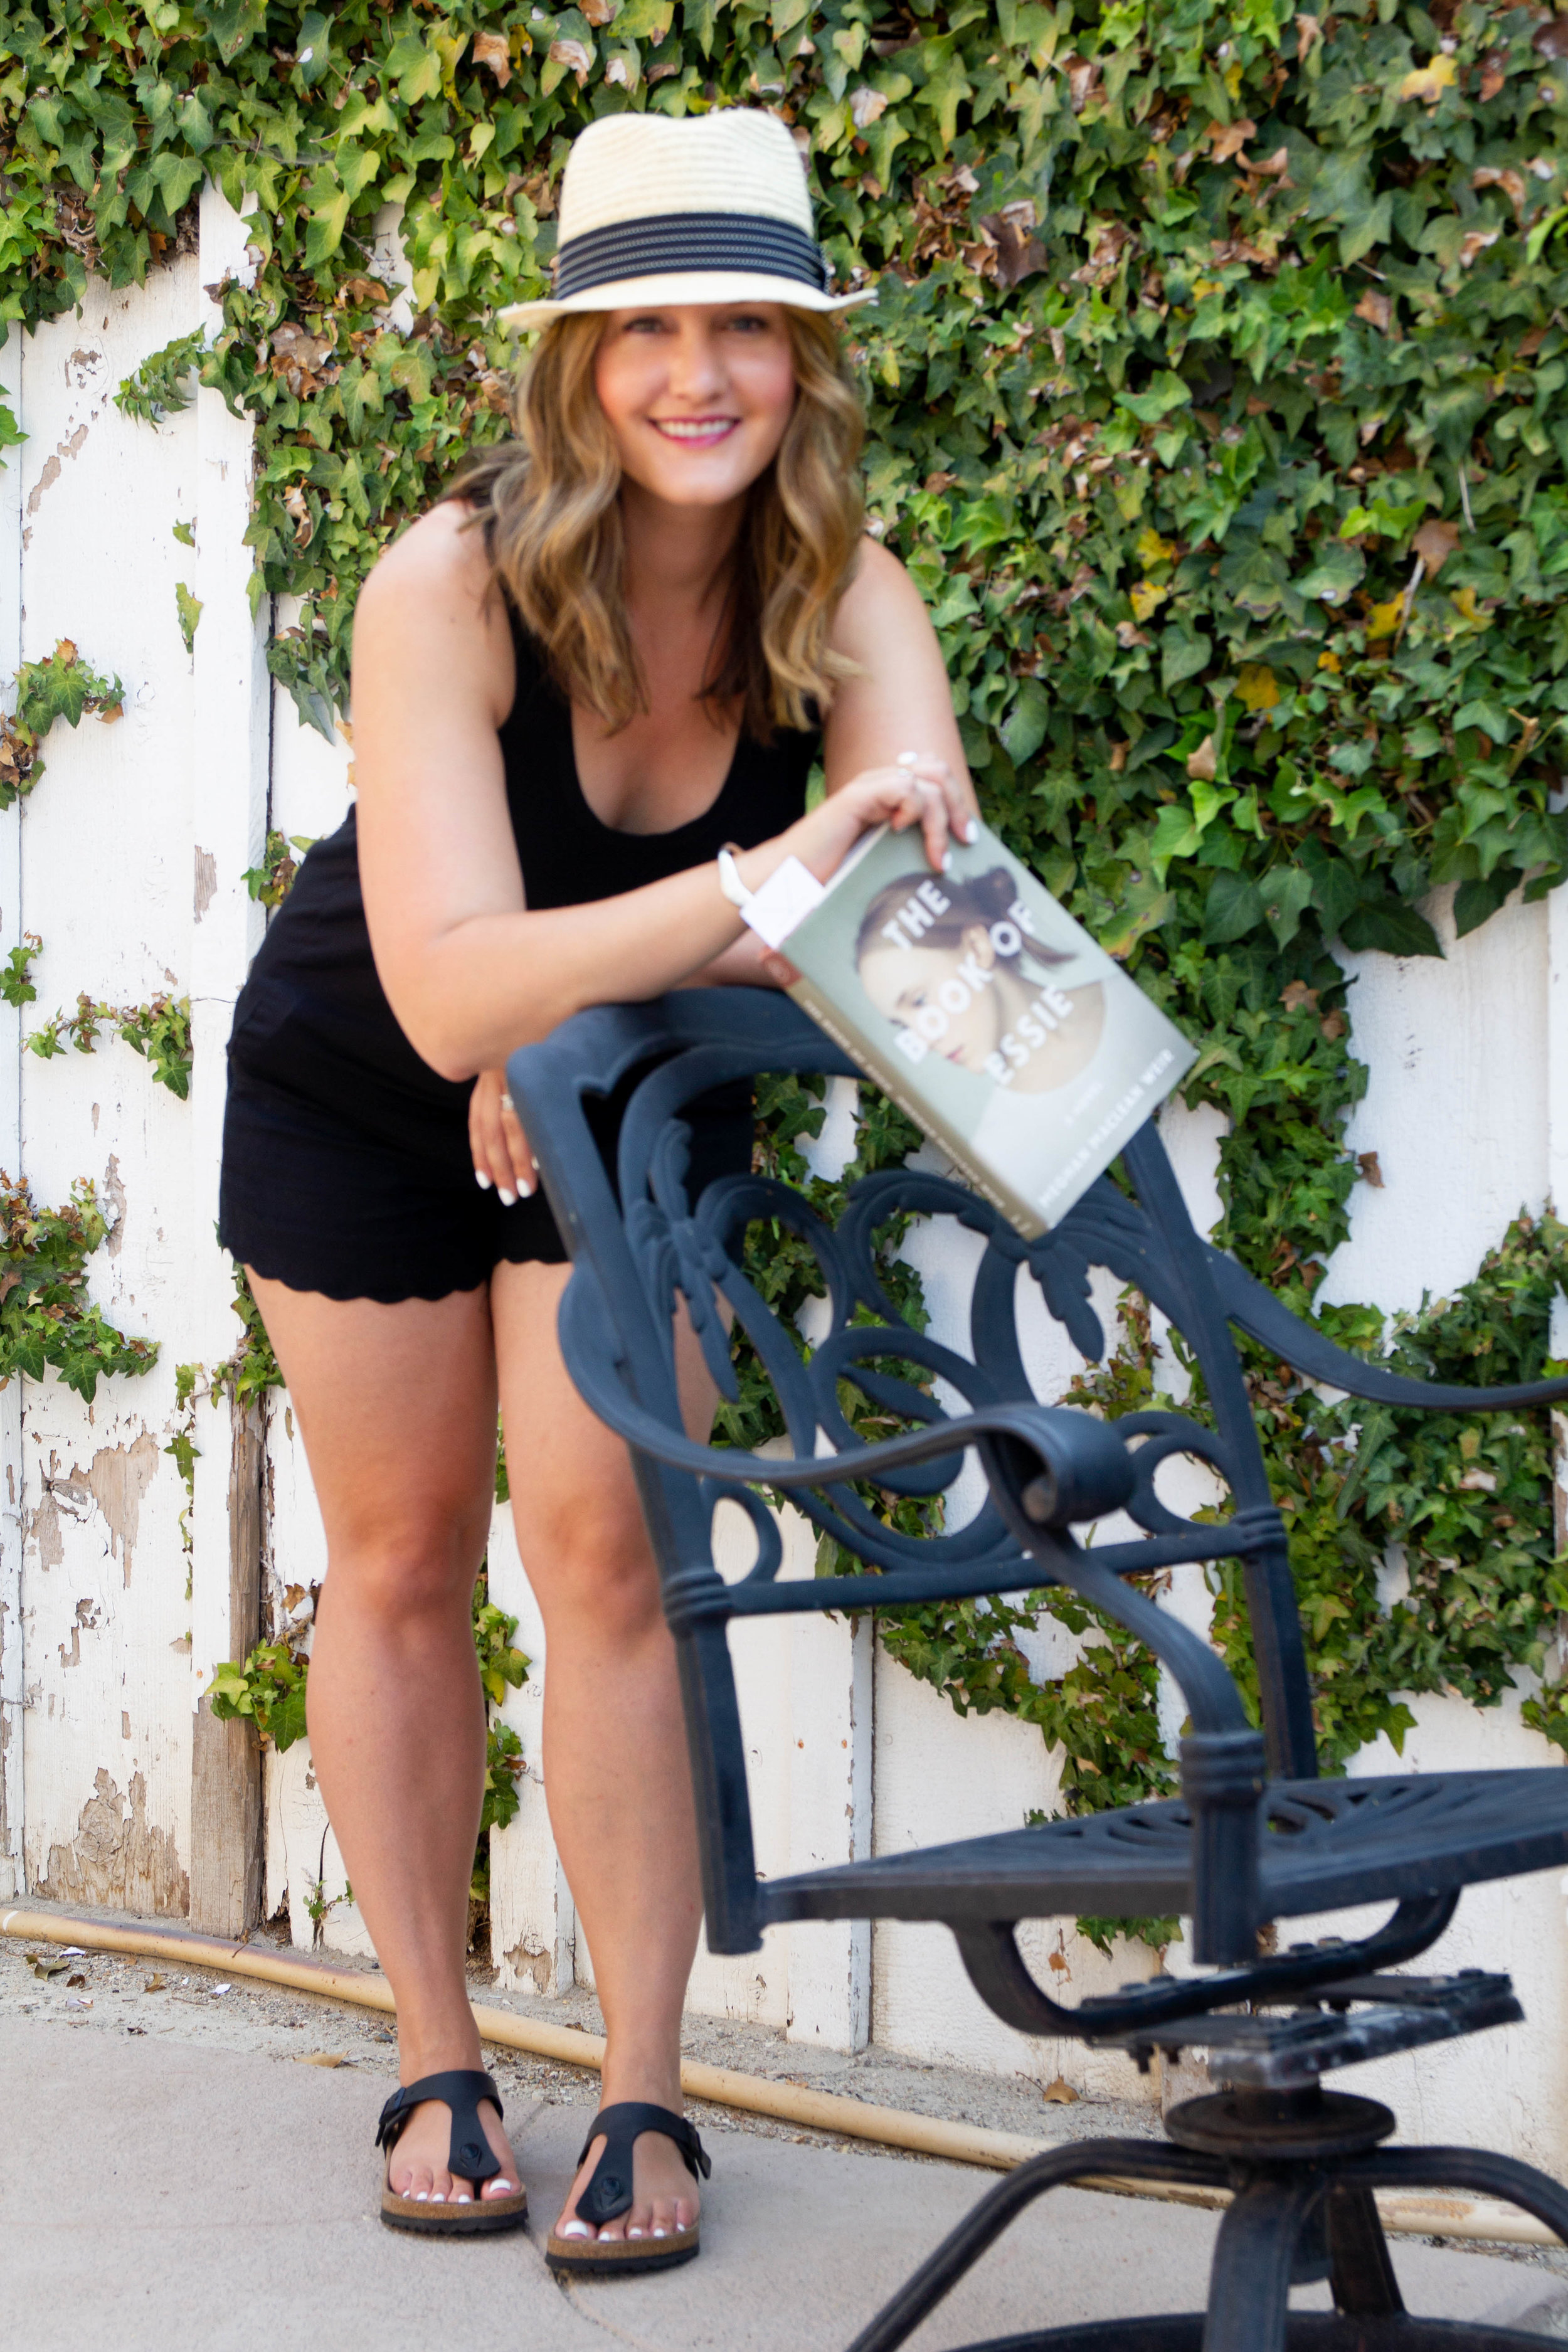 Reading The Book of Essie by Meghan MacLean Weir at our vacation rental in San Diego, CA